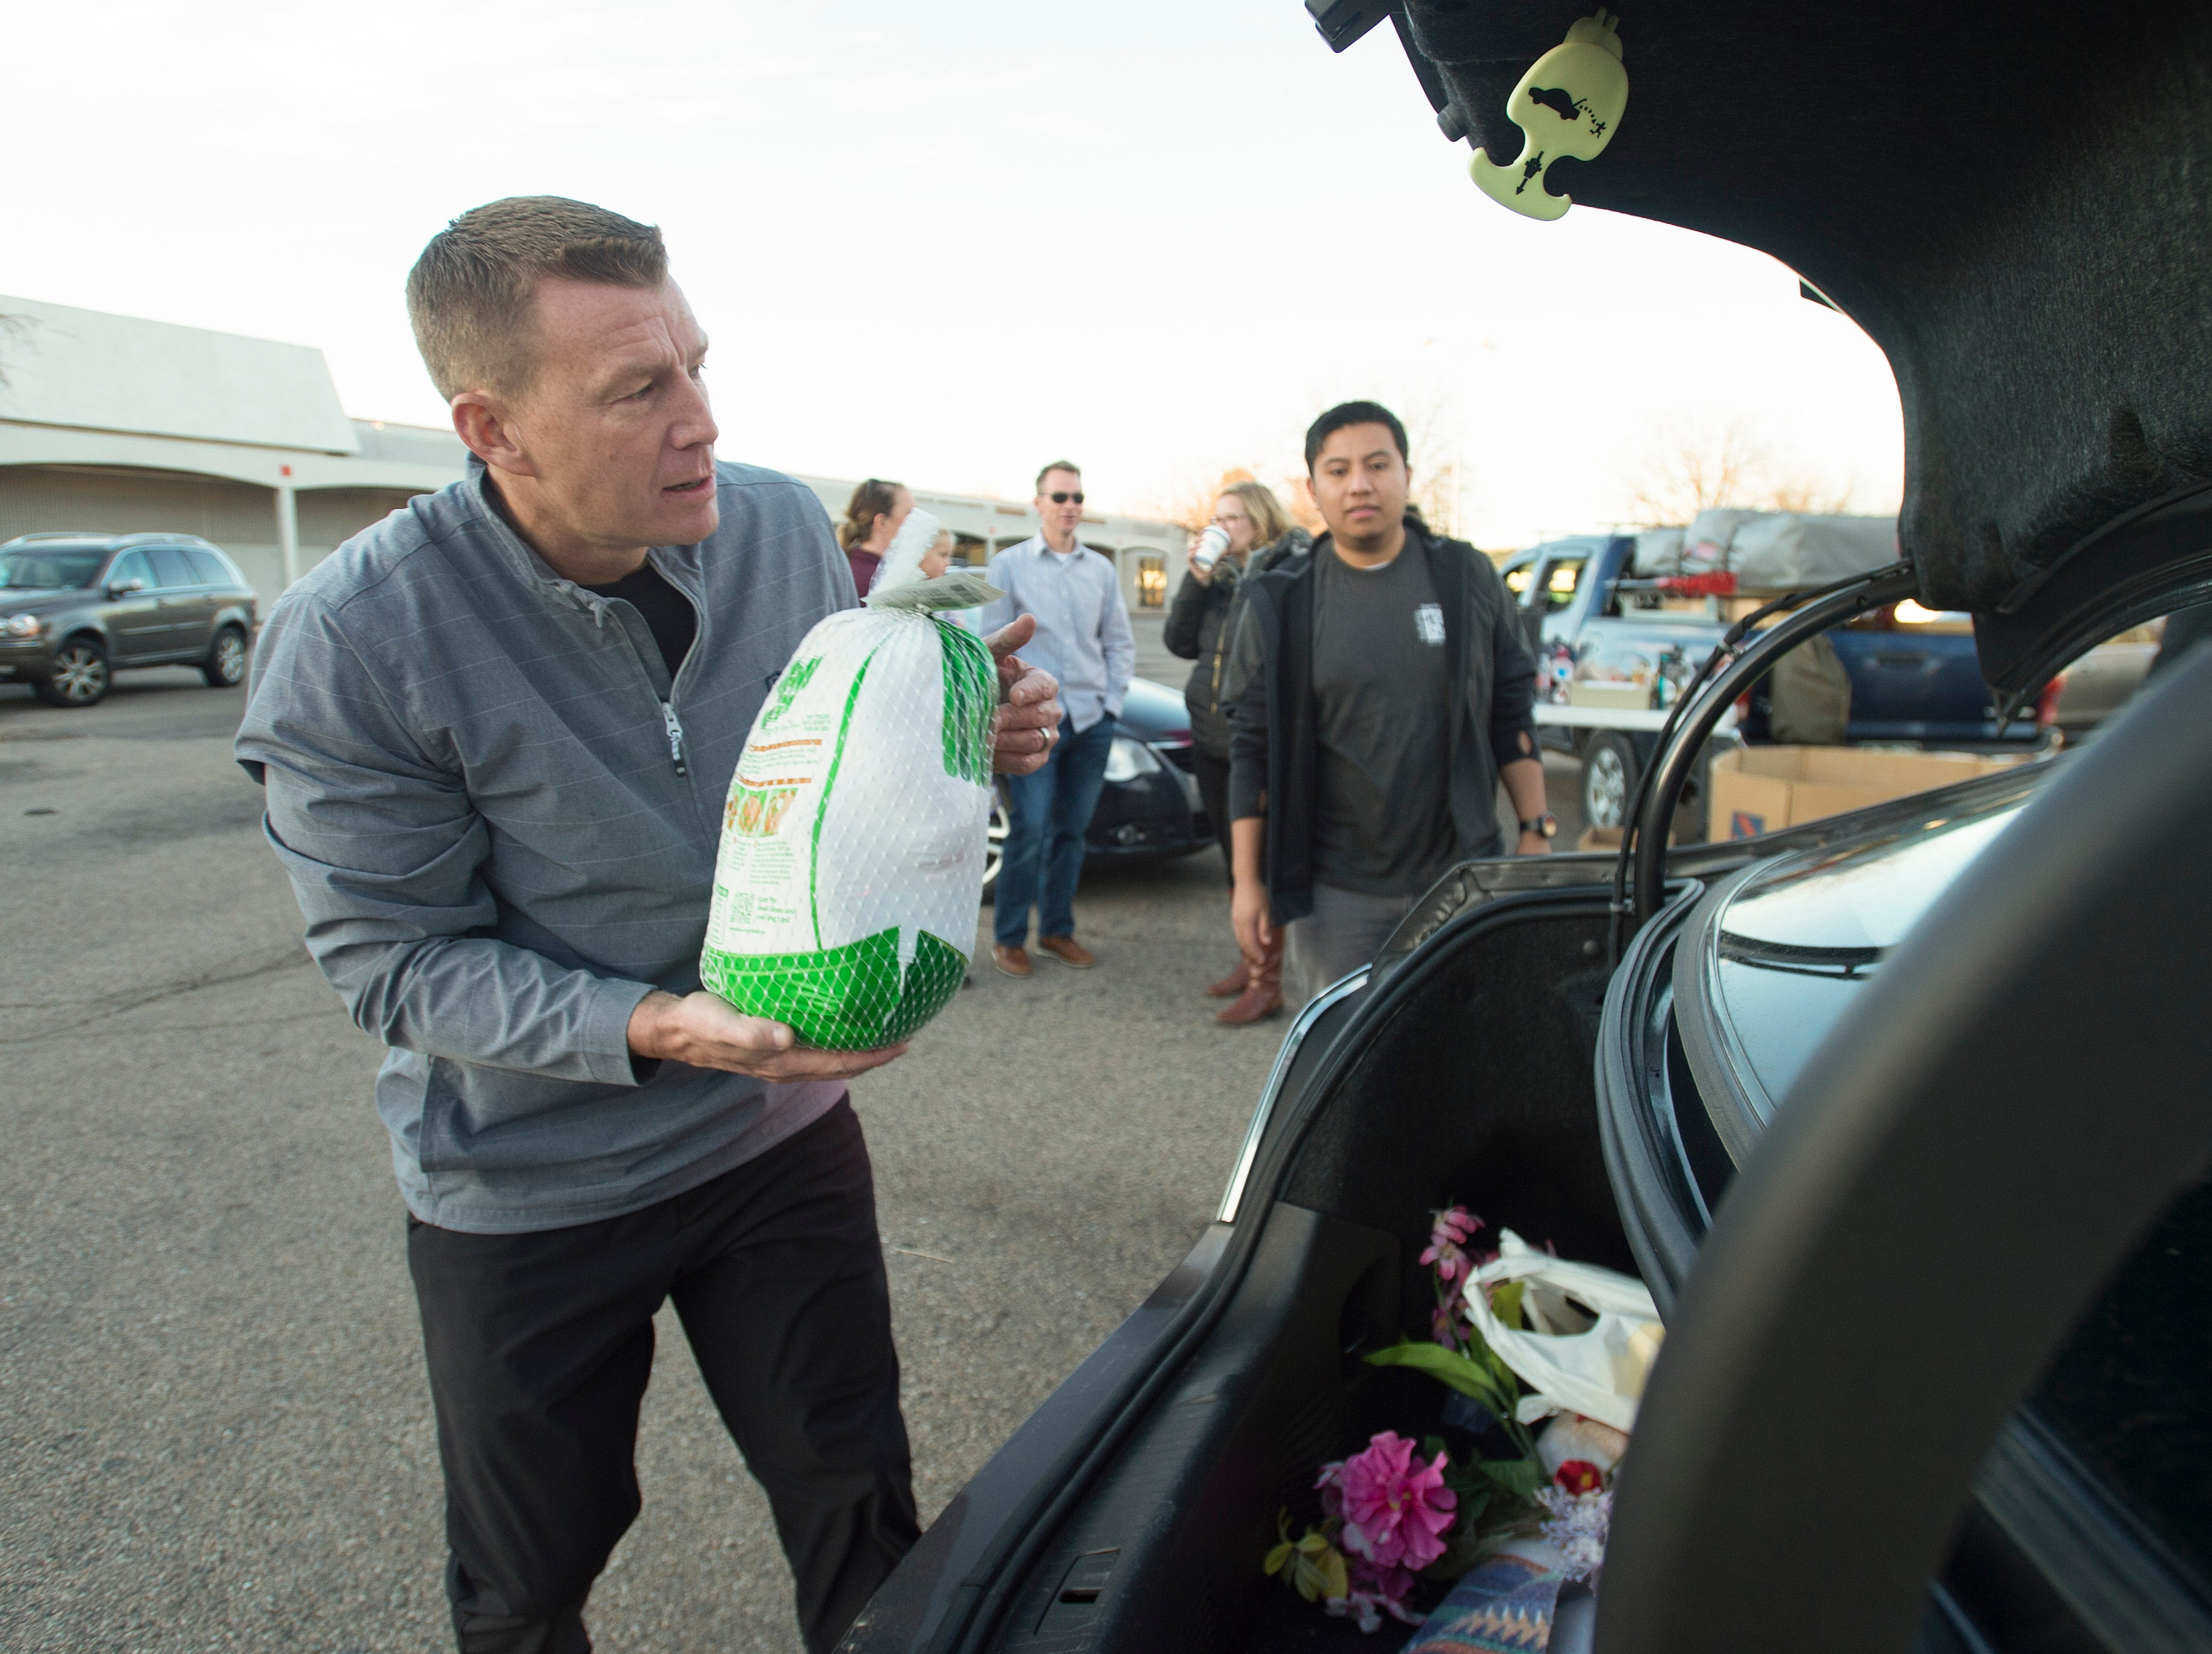 Volunteer Keith VanTassell collects a donated turkey as people drop off turkeys for Thanksgiving during the Food Bank for Larimer County's Stuff The Truck Turkey Donation on Thursday, November 15, 2018.